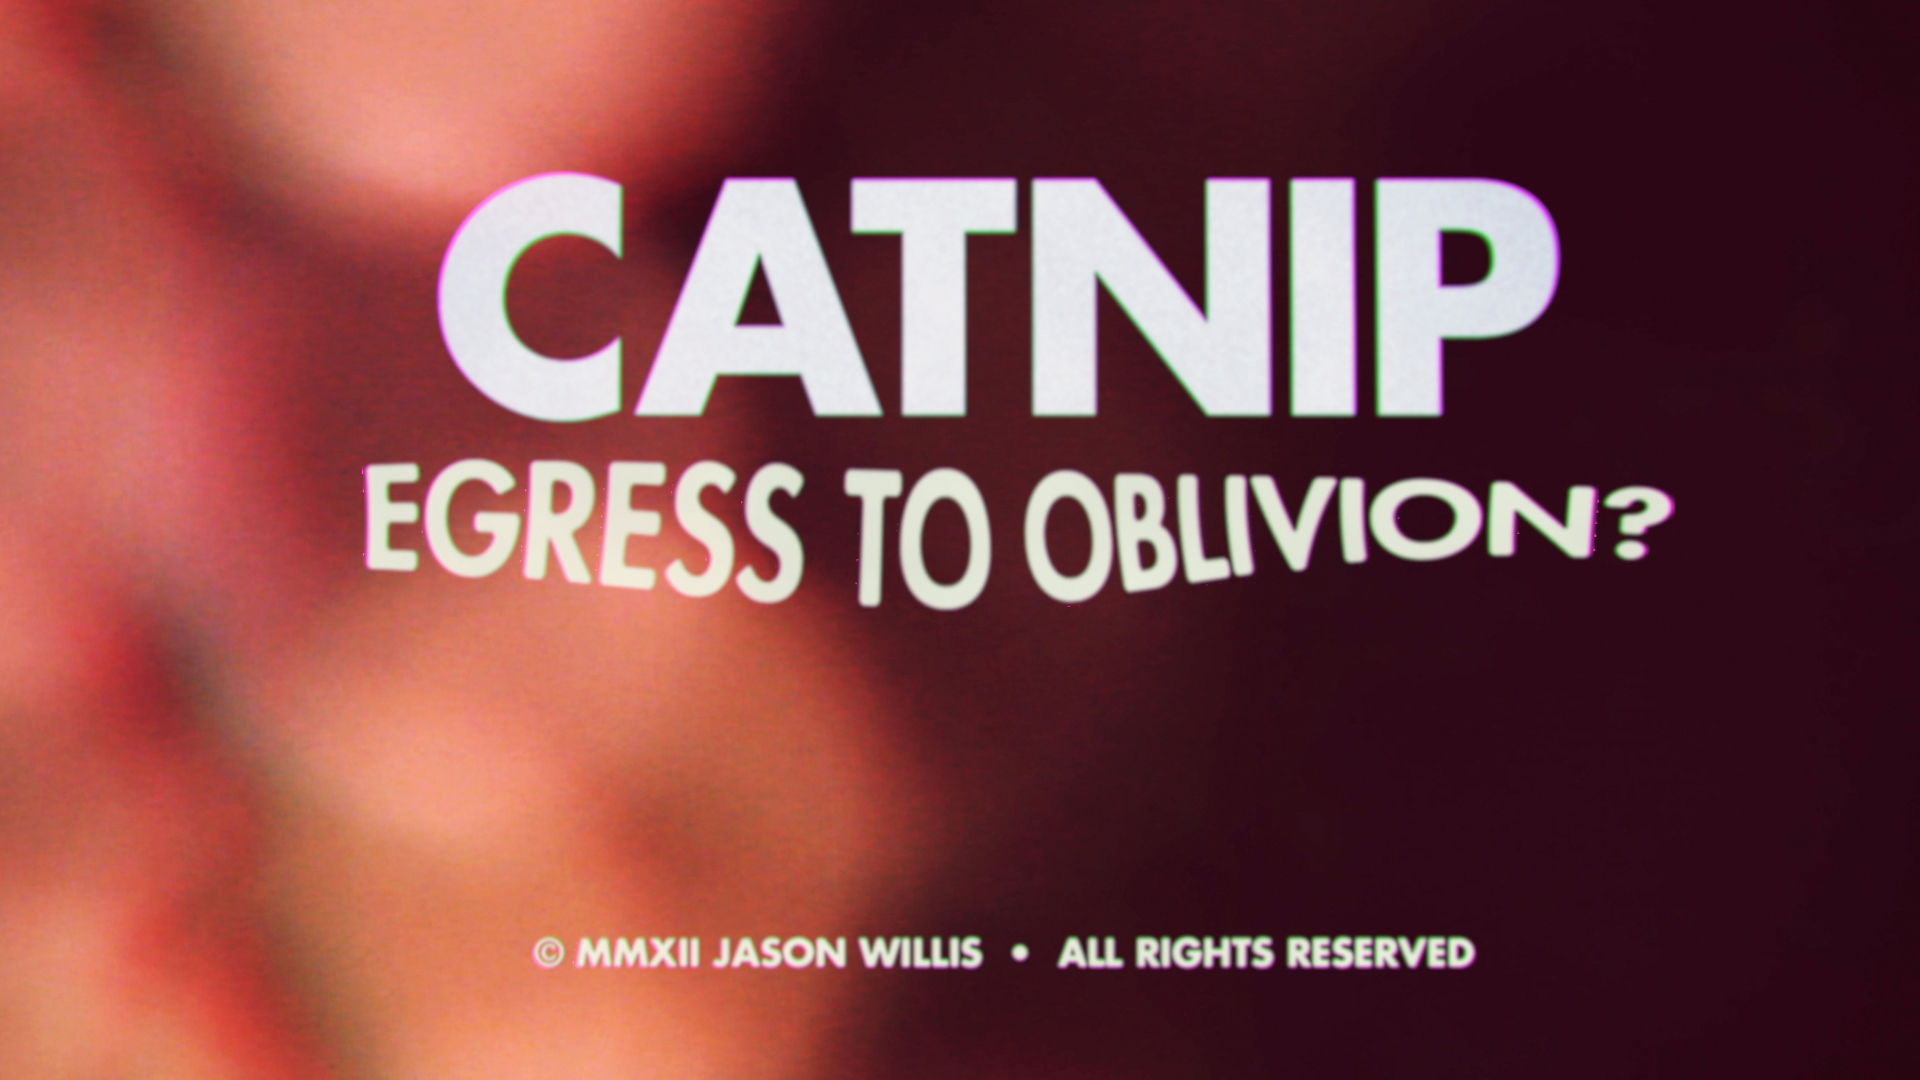 Catnip - Egress to Oblivion - Still 04